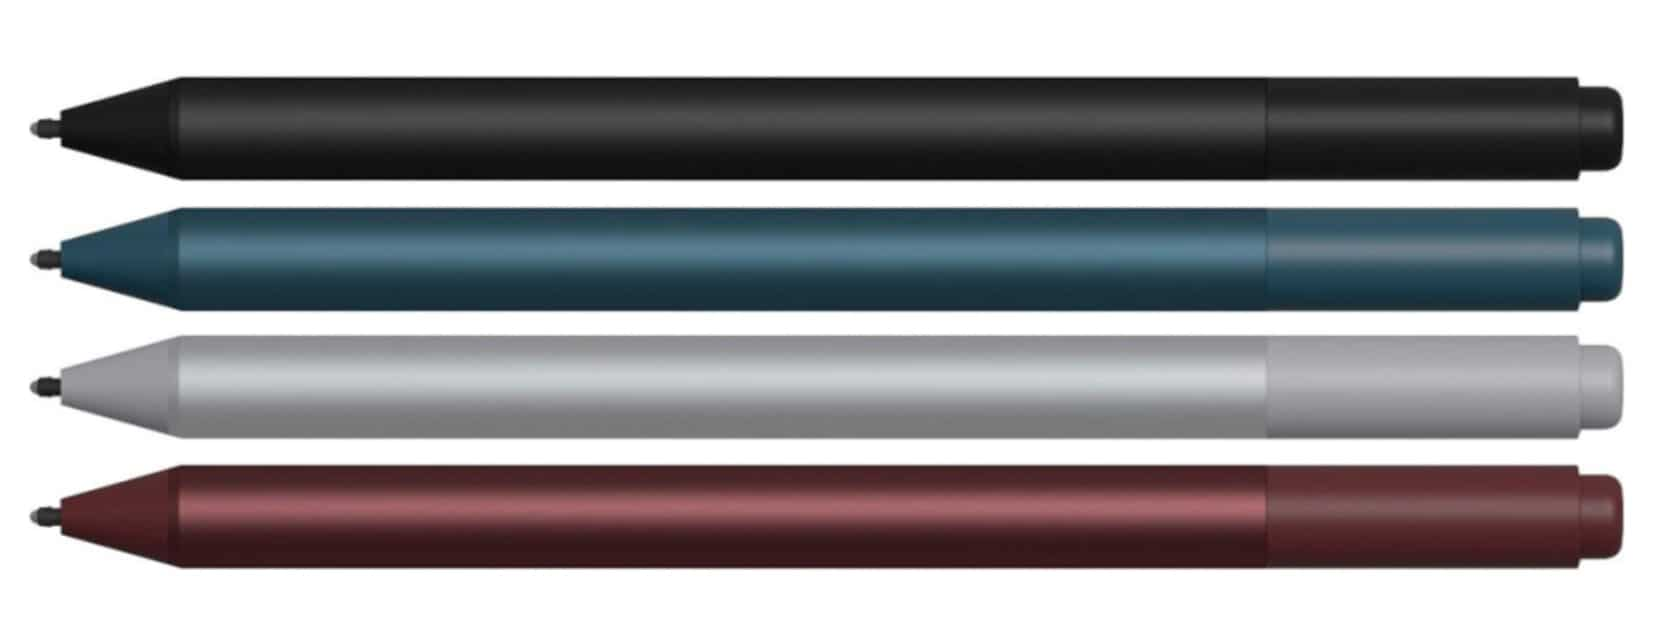 New Surface Pens